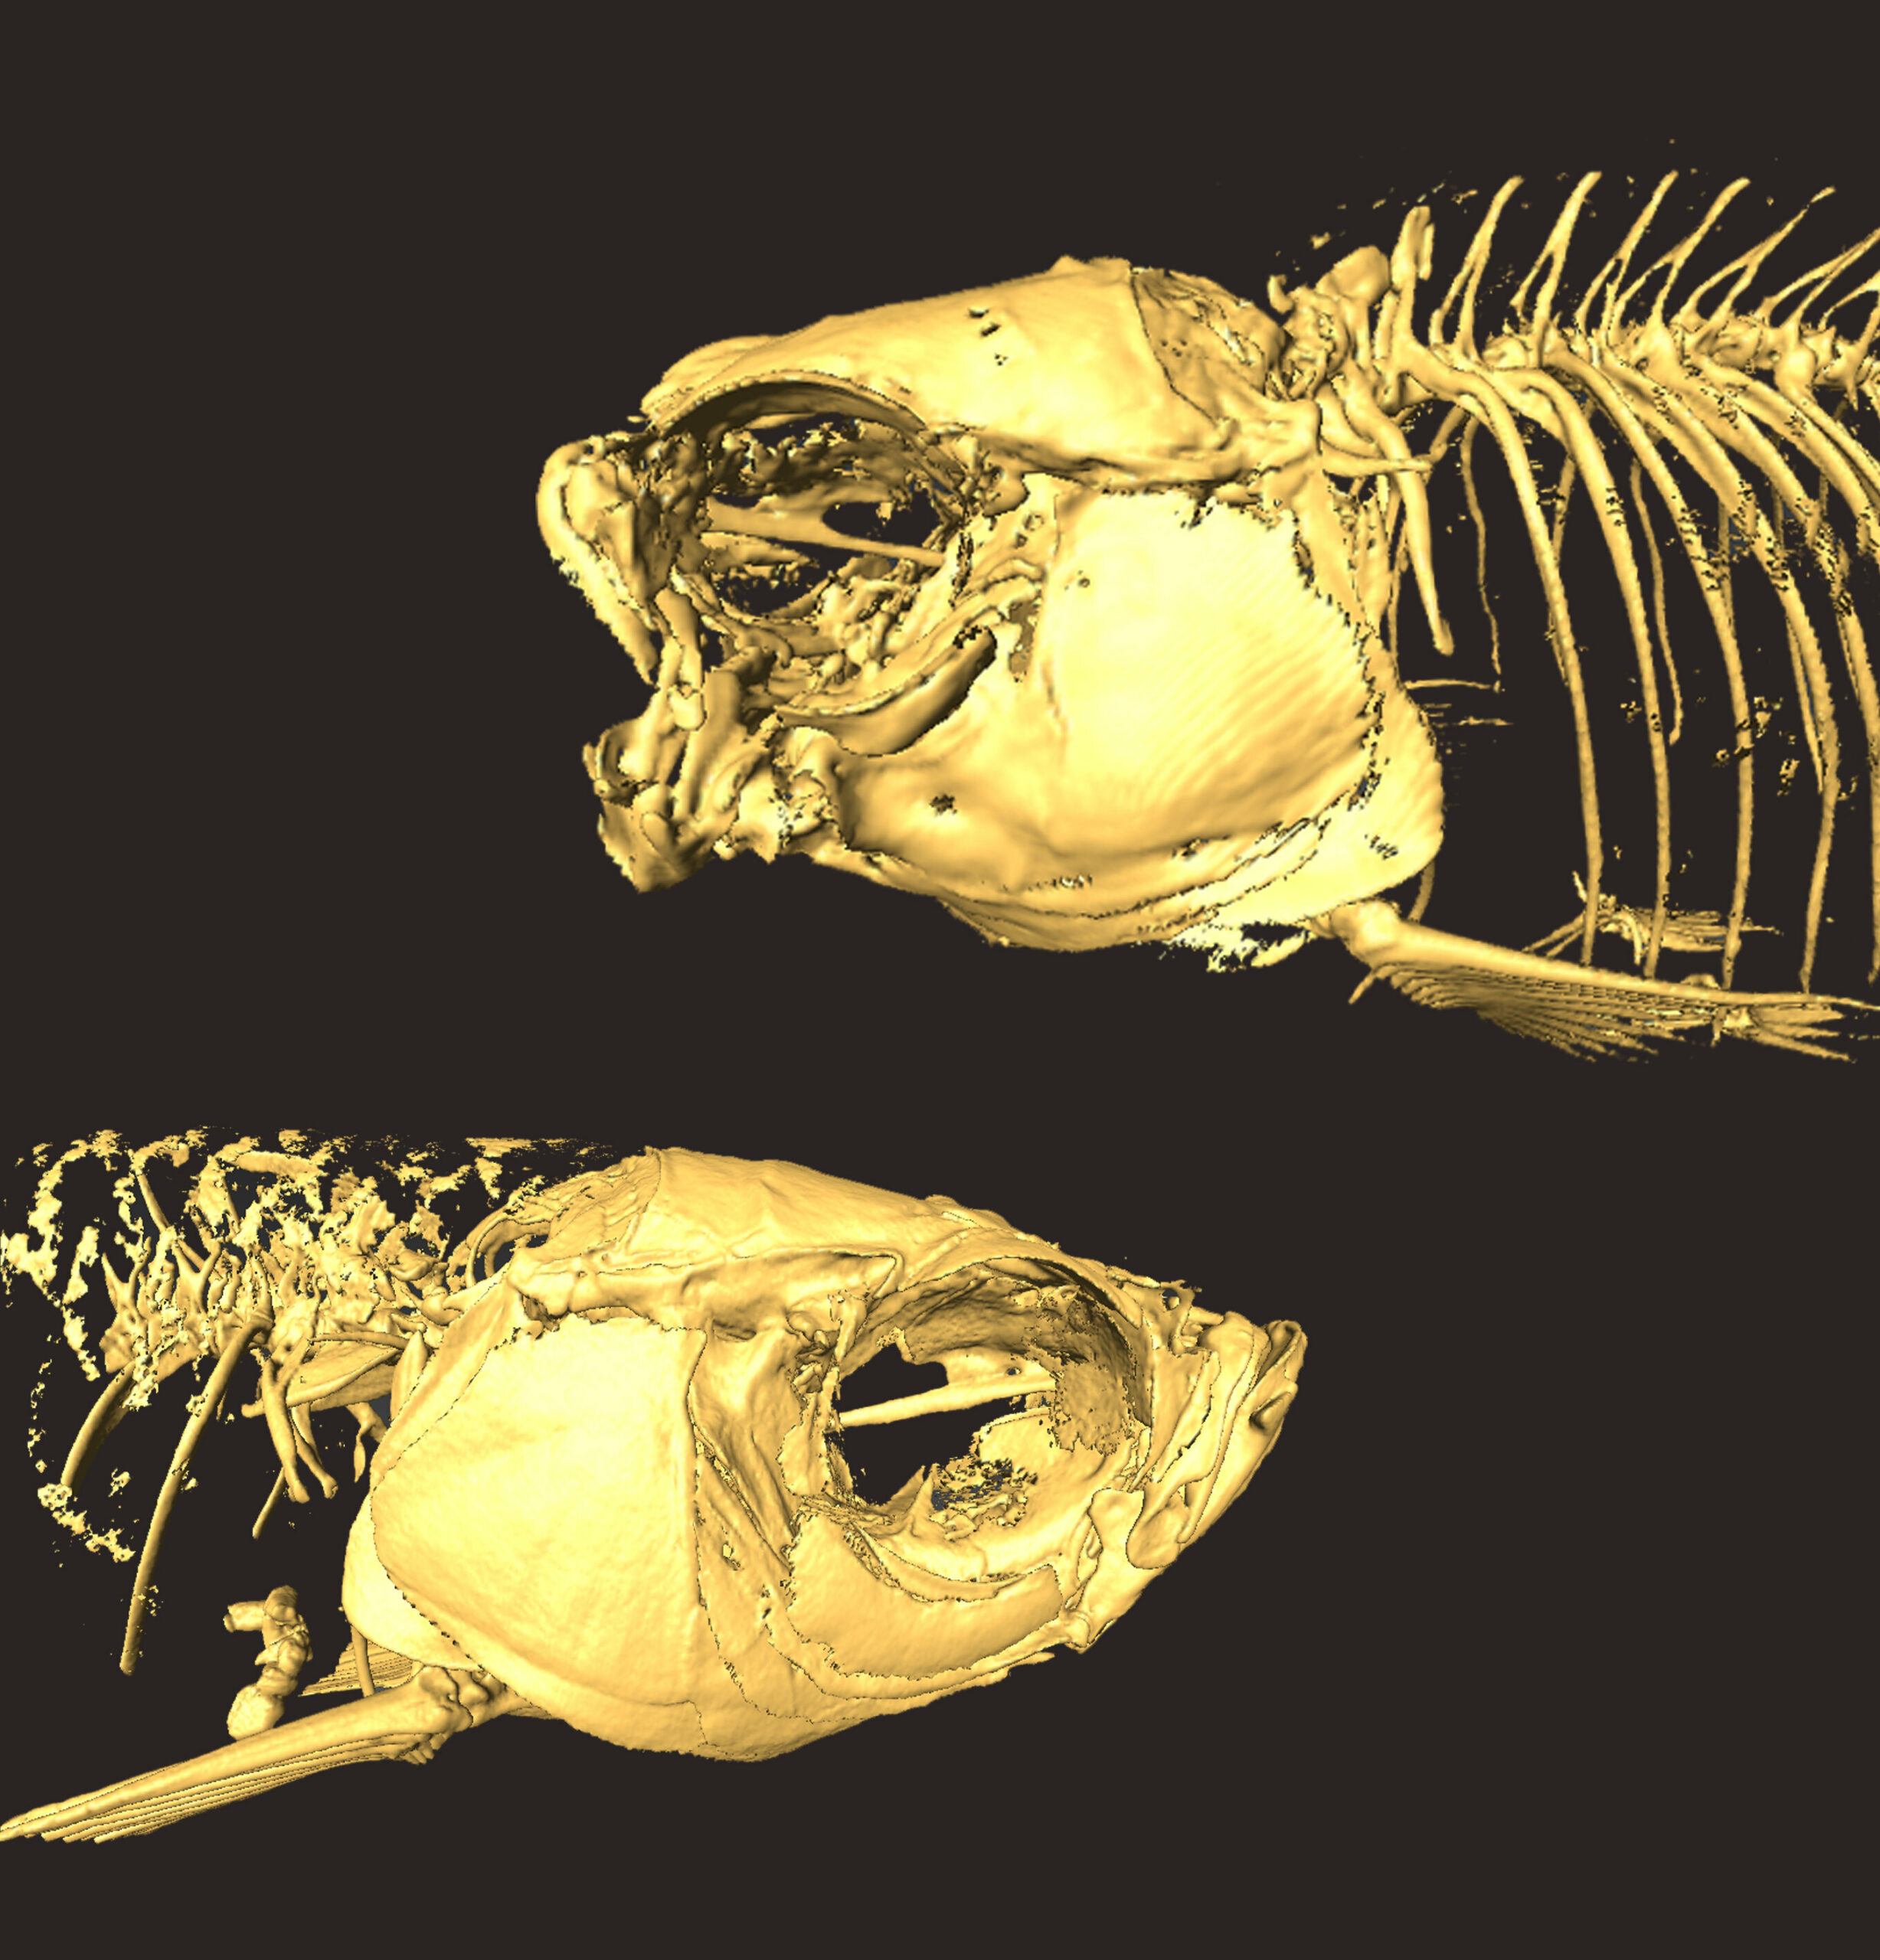 Modern mutant fishes replicate creatures of ancient oceans